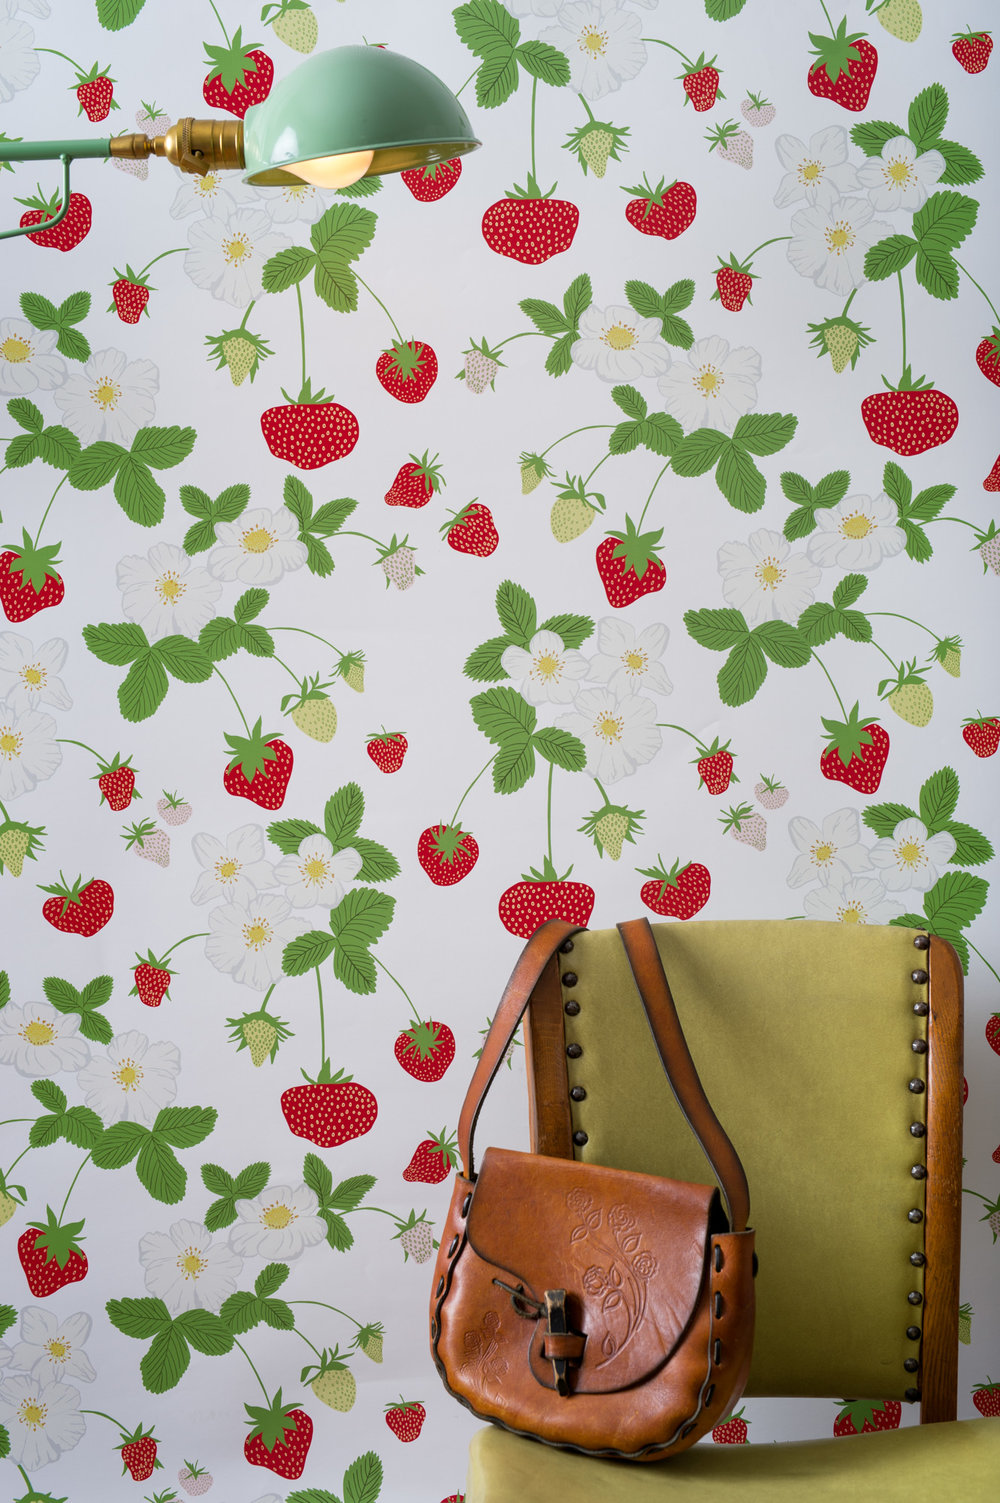 Kate Golding Wallpaper Strawberry Social 2-2.jpg